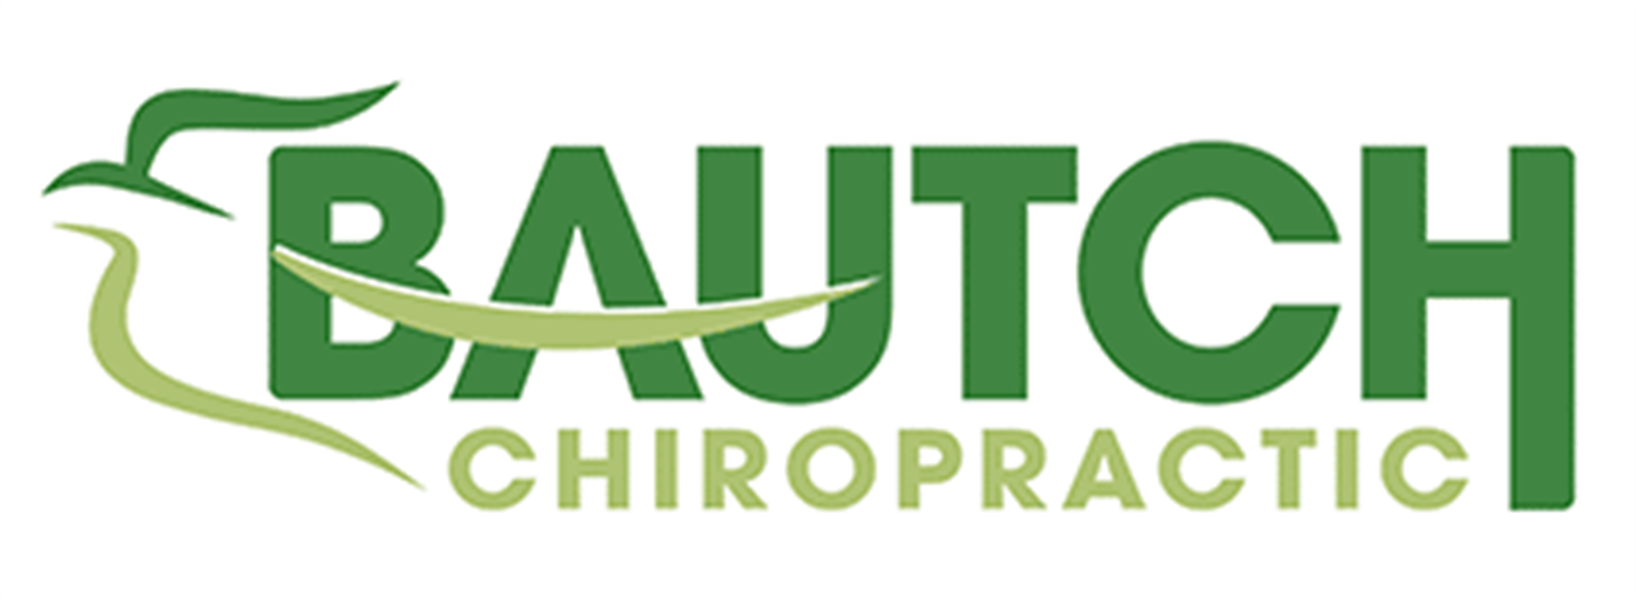 Bautch Chiropractic West